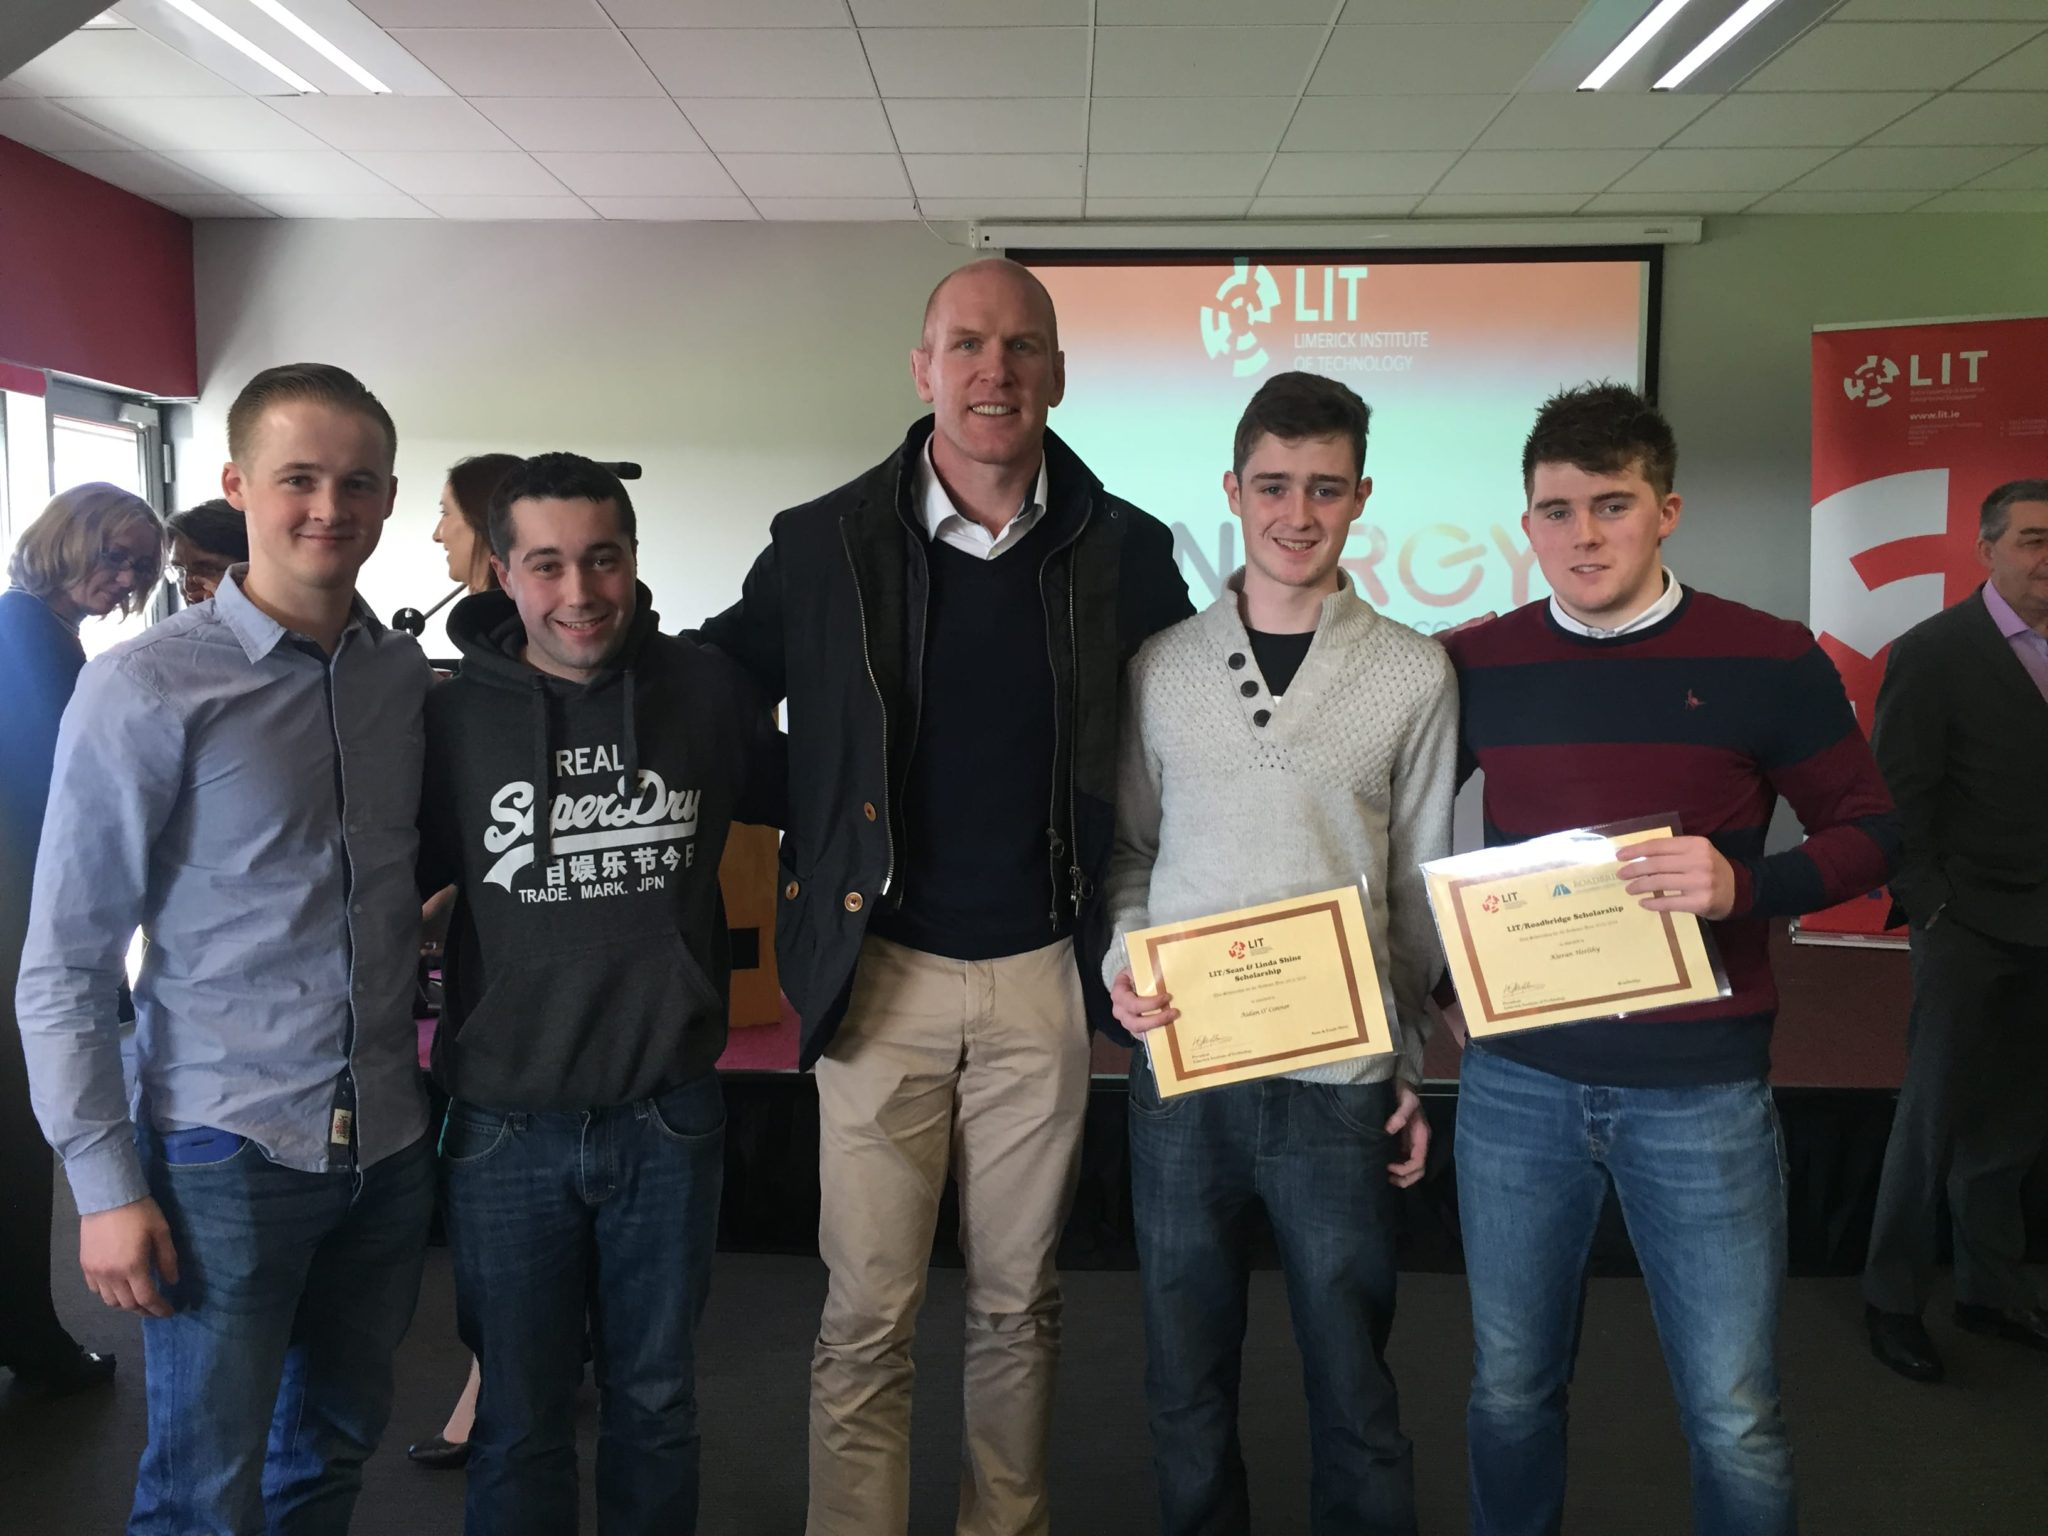 2016 Feb: Leaders at LIT student scholarship programme with Rugbby Legend Paul O'Connell